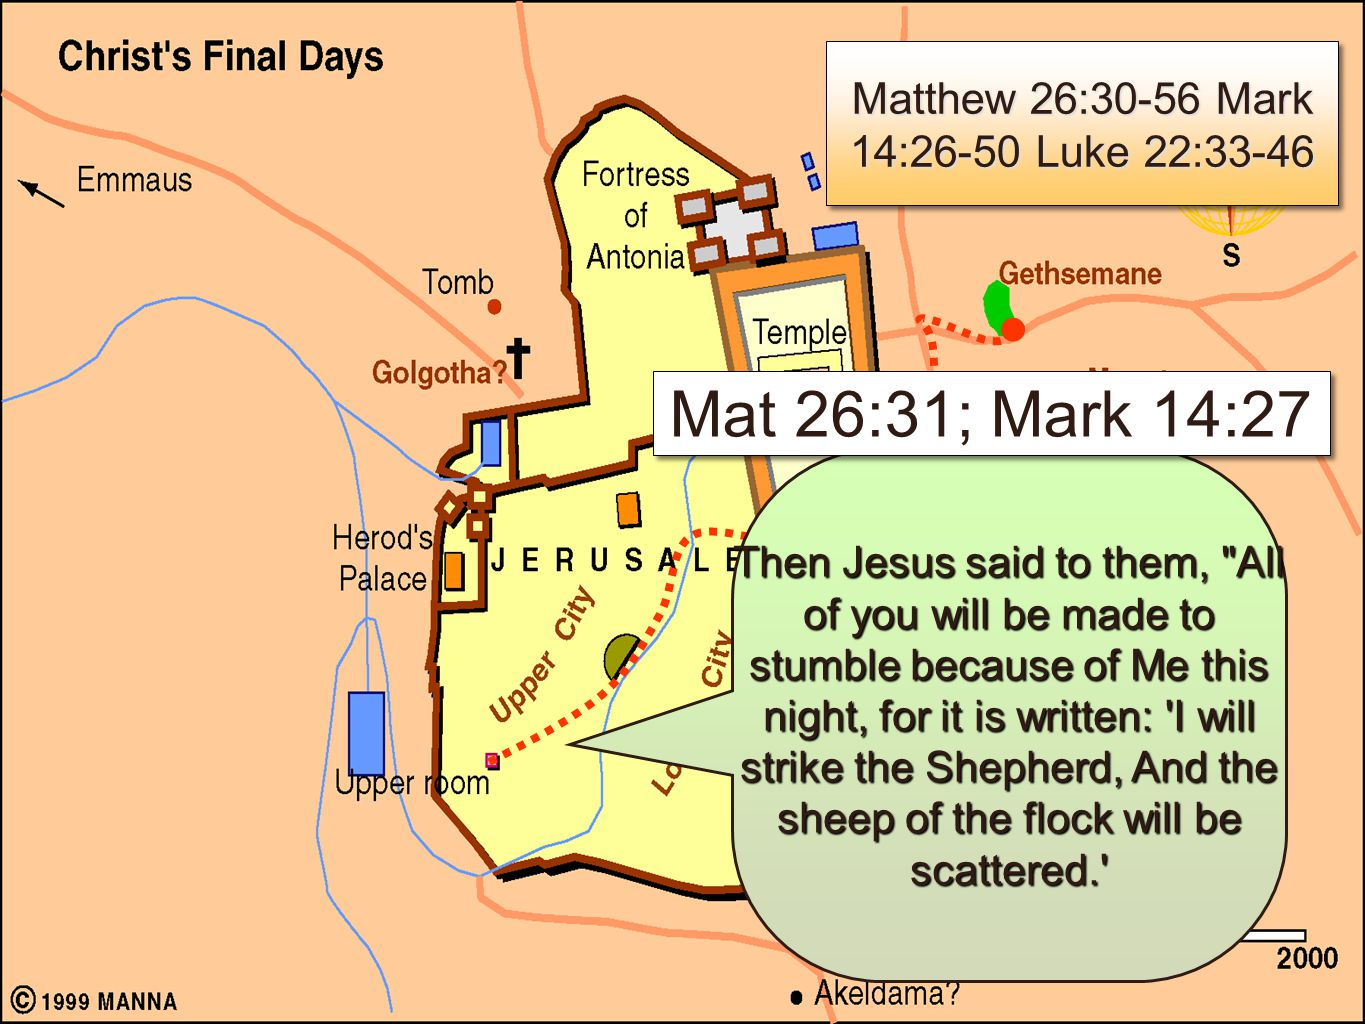 6 Jesus speaks of His death & resurrection - Mat 26:31,32; Mark 14:27,28 Peter affirms his loyalty, even to death - Mat 26:33; Mark 14:29; Luke 22:33 Jesus foretells Peter's denial and Peter & the other apostles reaffirmation - Mat 26:34,35; Mark 14:30:31; Luke 22:31-34; John 13:38 Needed supplies - Luke 22:35-38 Jesus speaks of His death & resurrection - Mat 26:31,32; Mark 14:27,28 Peter affirms his loyalty, even to death - Mat 26:33; Mark 14:29; Luke 22:33 Jesus foretells Peter's denial and Peter & the other apostles reaffirmation - Mat 26:34,35; Mark 14:30:31; Luke 22:31-34; John 13:38 Needed supplies - Luke 22:35-38 Mat 26:31-35; Mark 14:27-31; Luke 22:33-38 Mat 26:31-35; Mark 14:27-31; Luke 22:33-38 Matthew 26:30-56 Mark 14:26-50 Luke 22:33-46